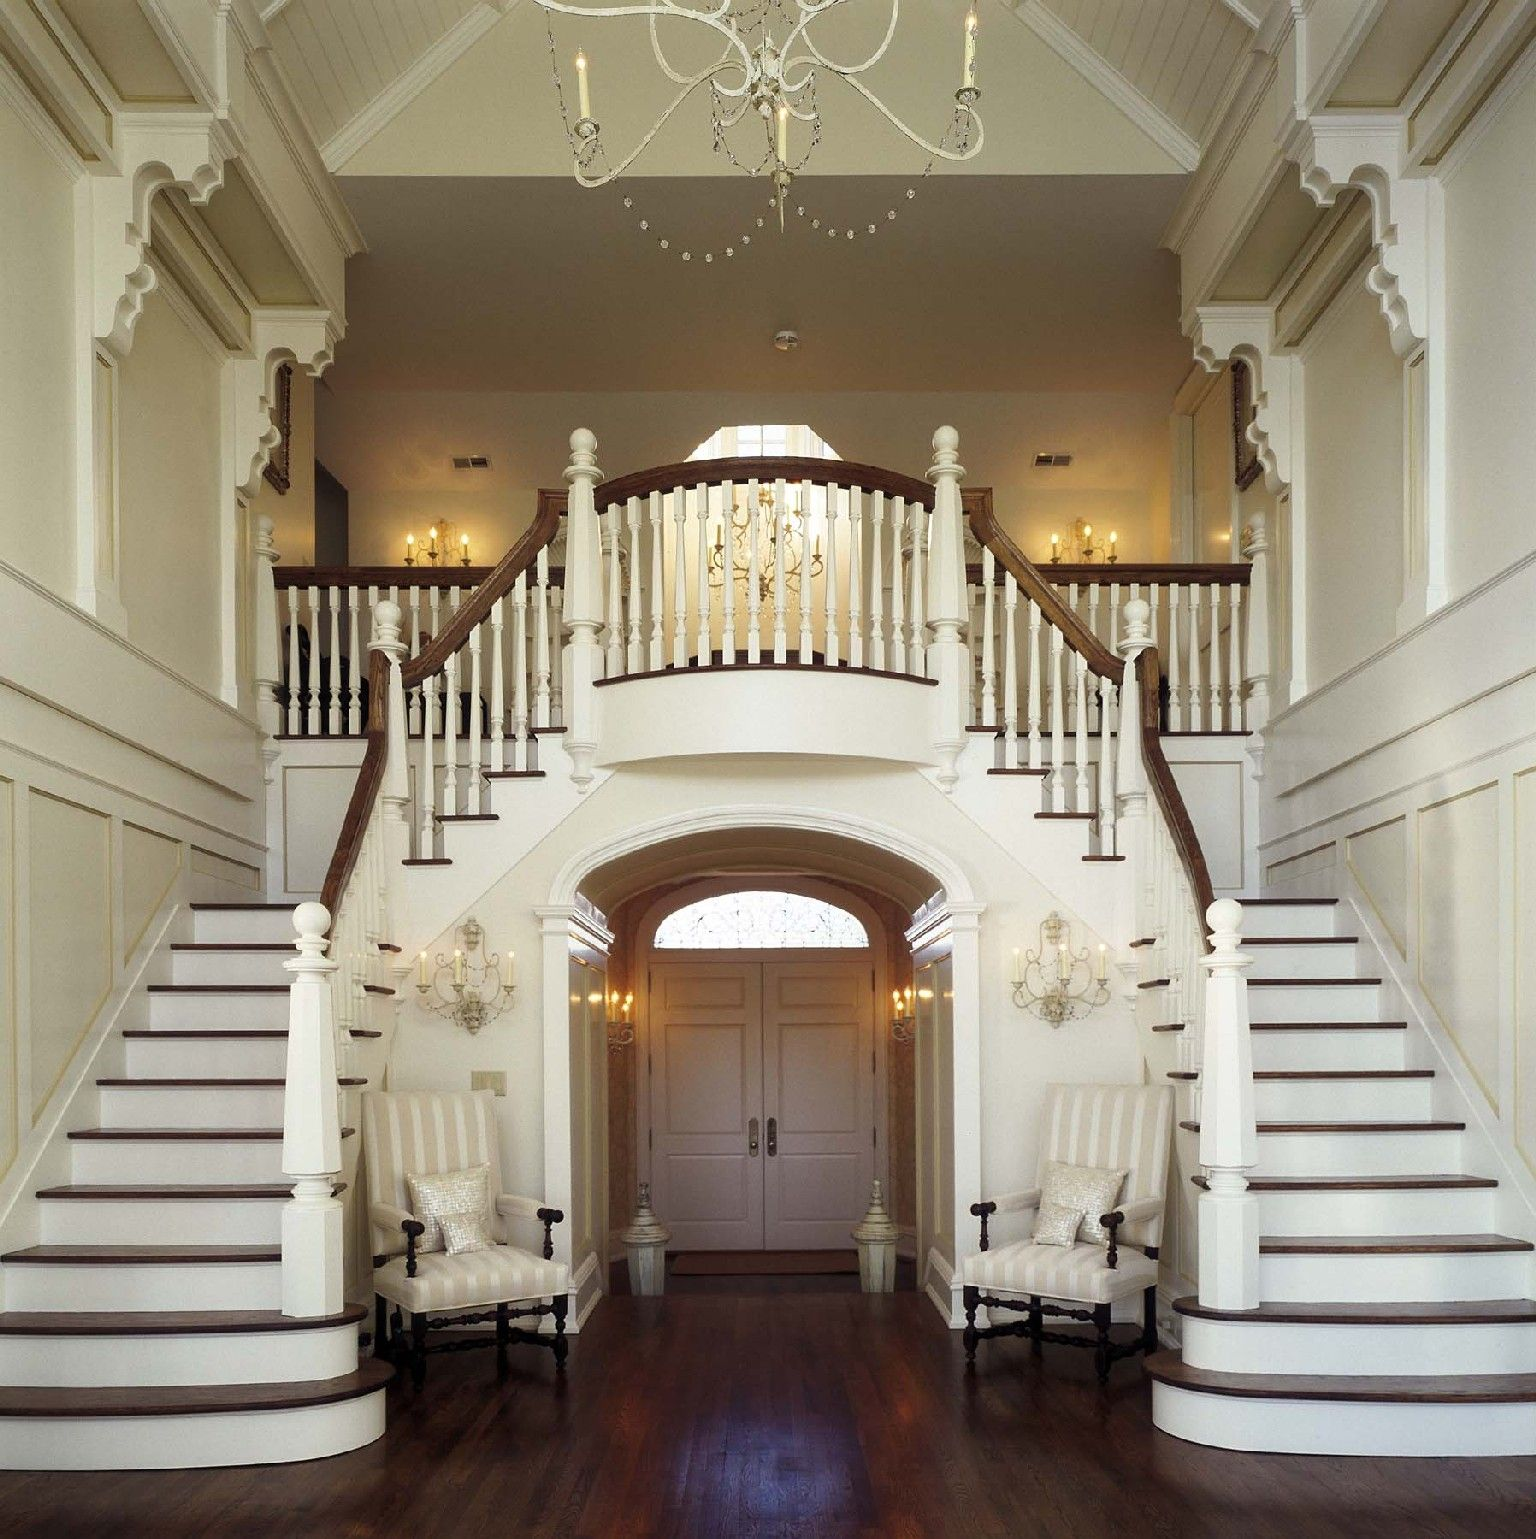 55 Luxurious Grand Staircase Design Ideas That Are Just